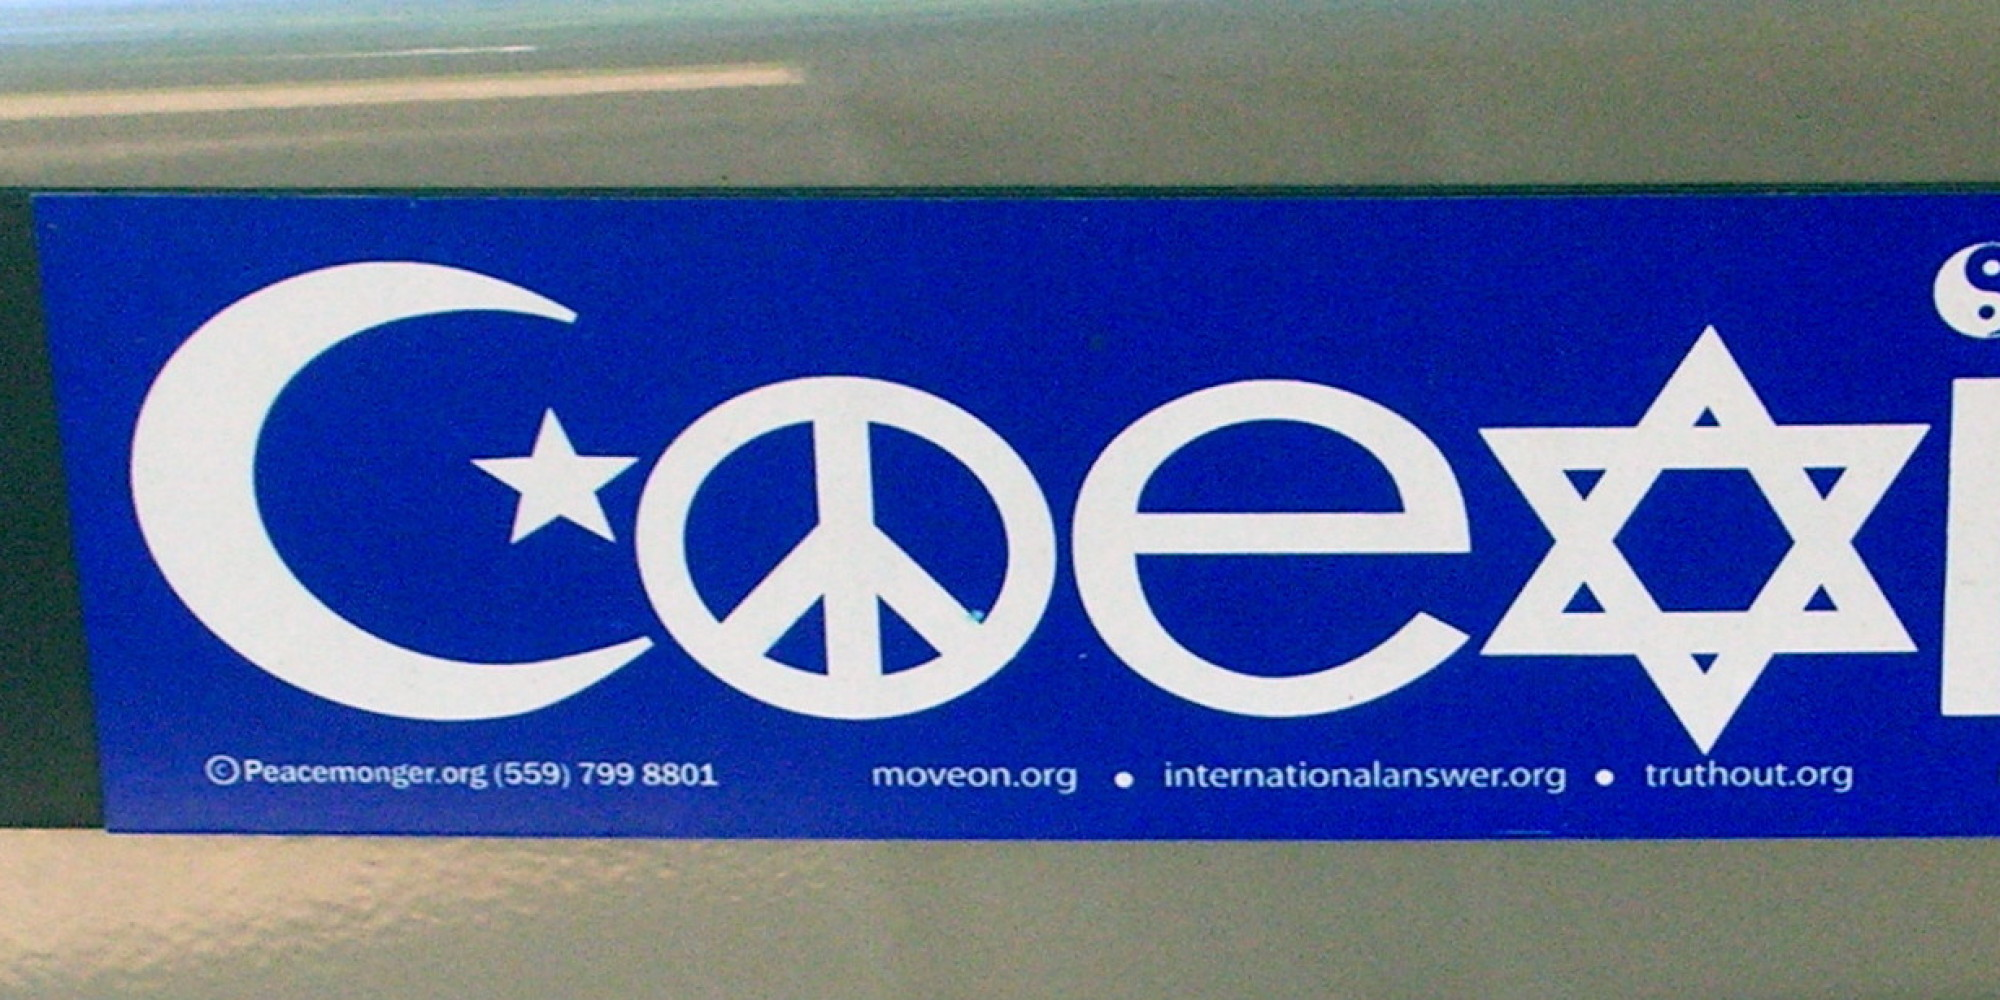 Why the coexist bumper stickers bug me huffpost biocorpaavc